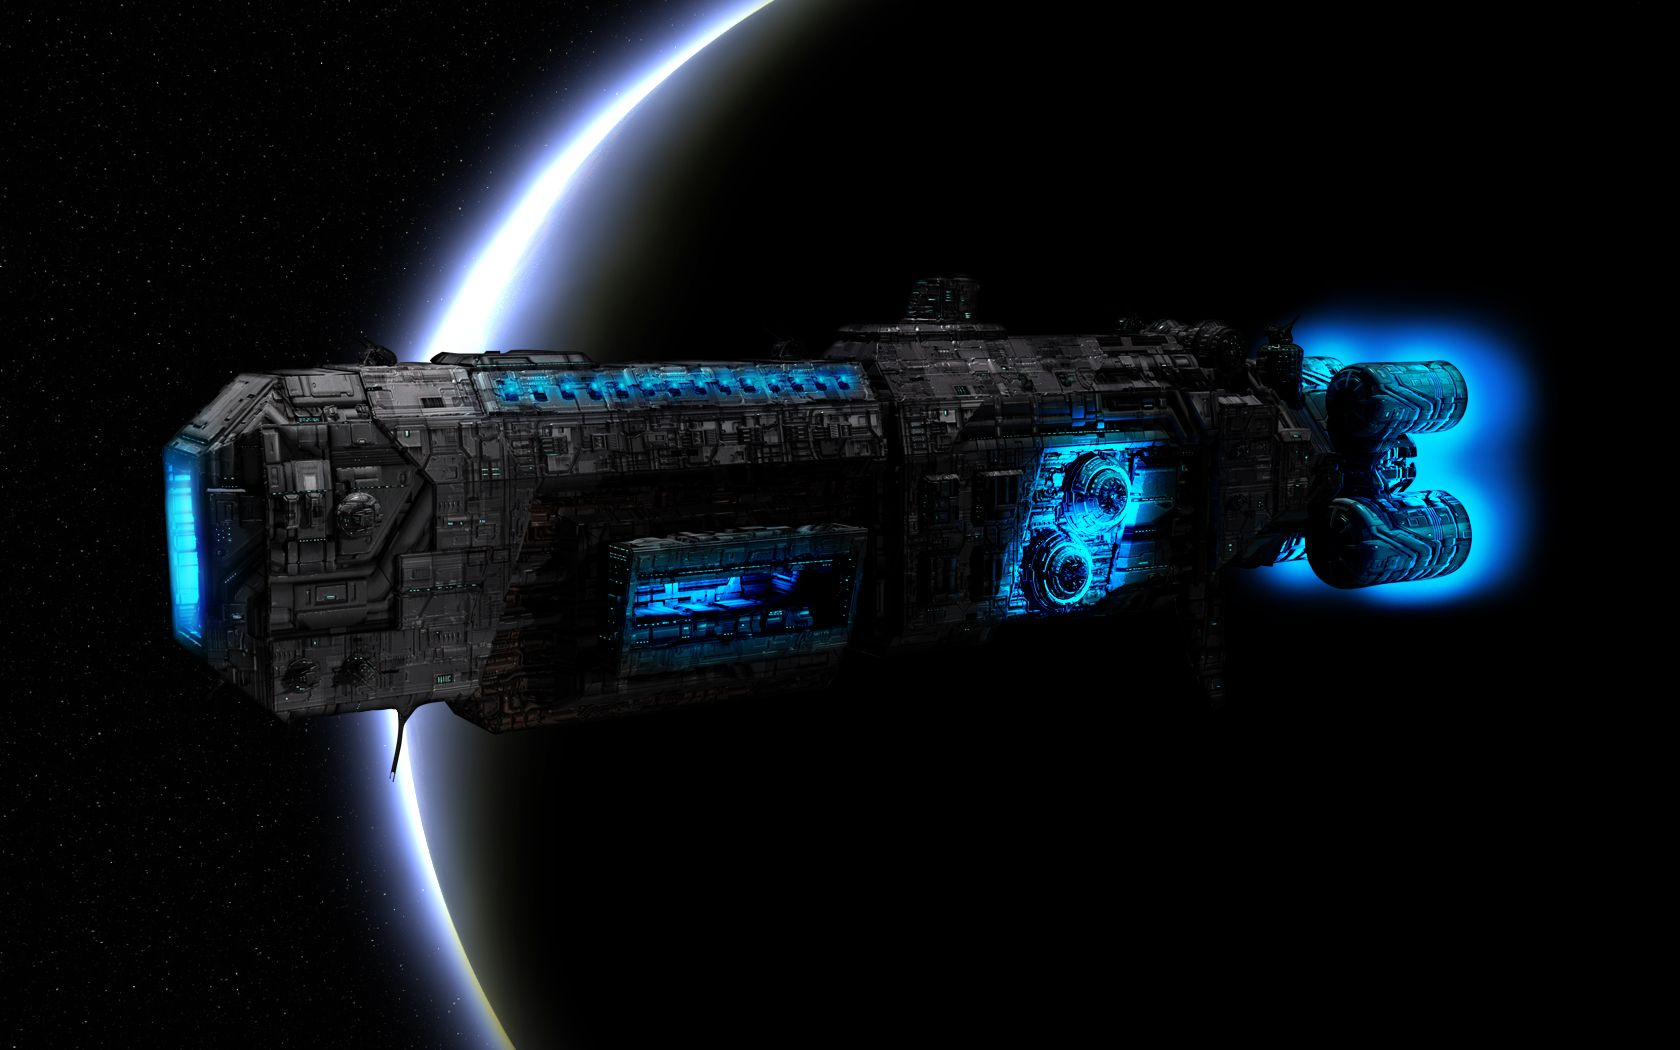 Black themed spaceship conceptual artwork and wallpapers 1 design - Fantasy Places